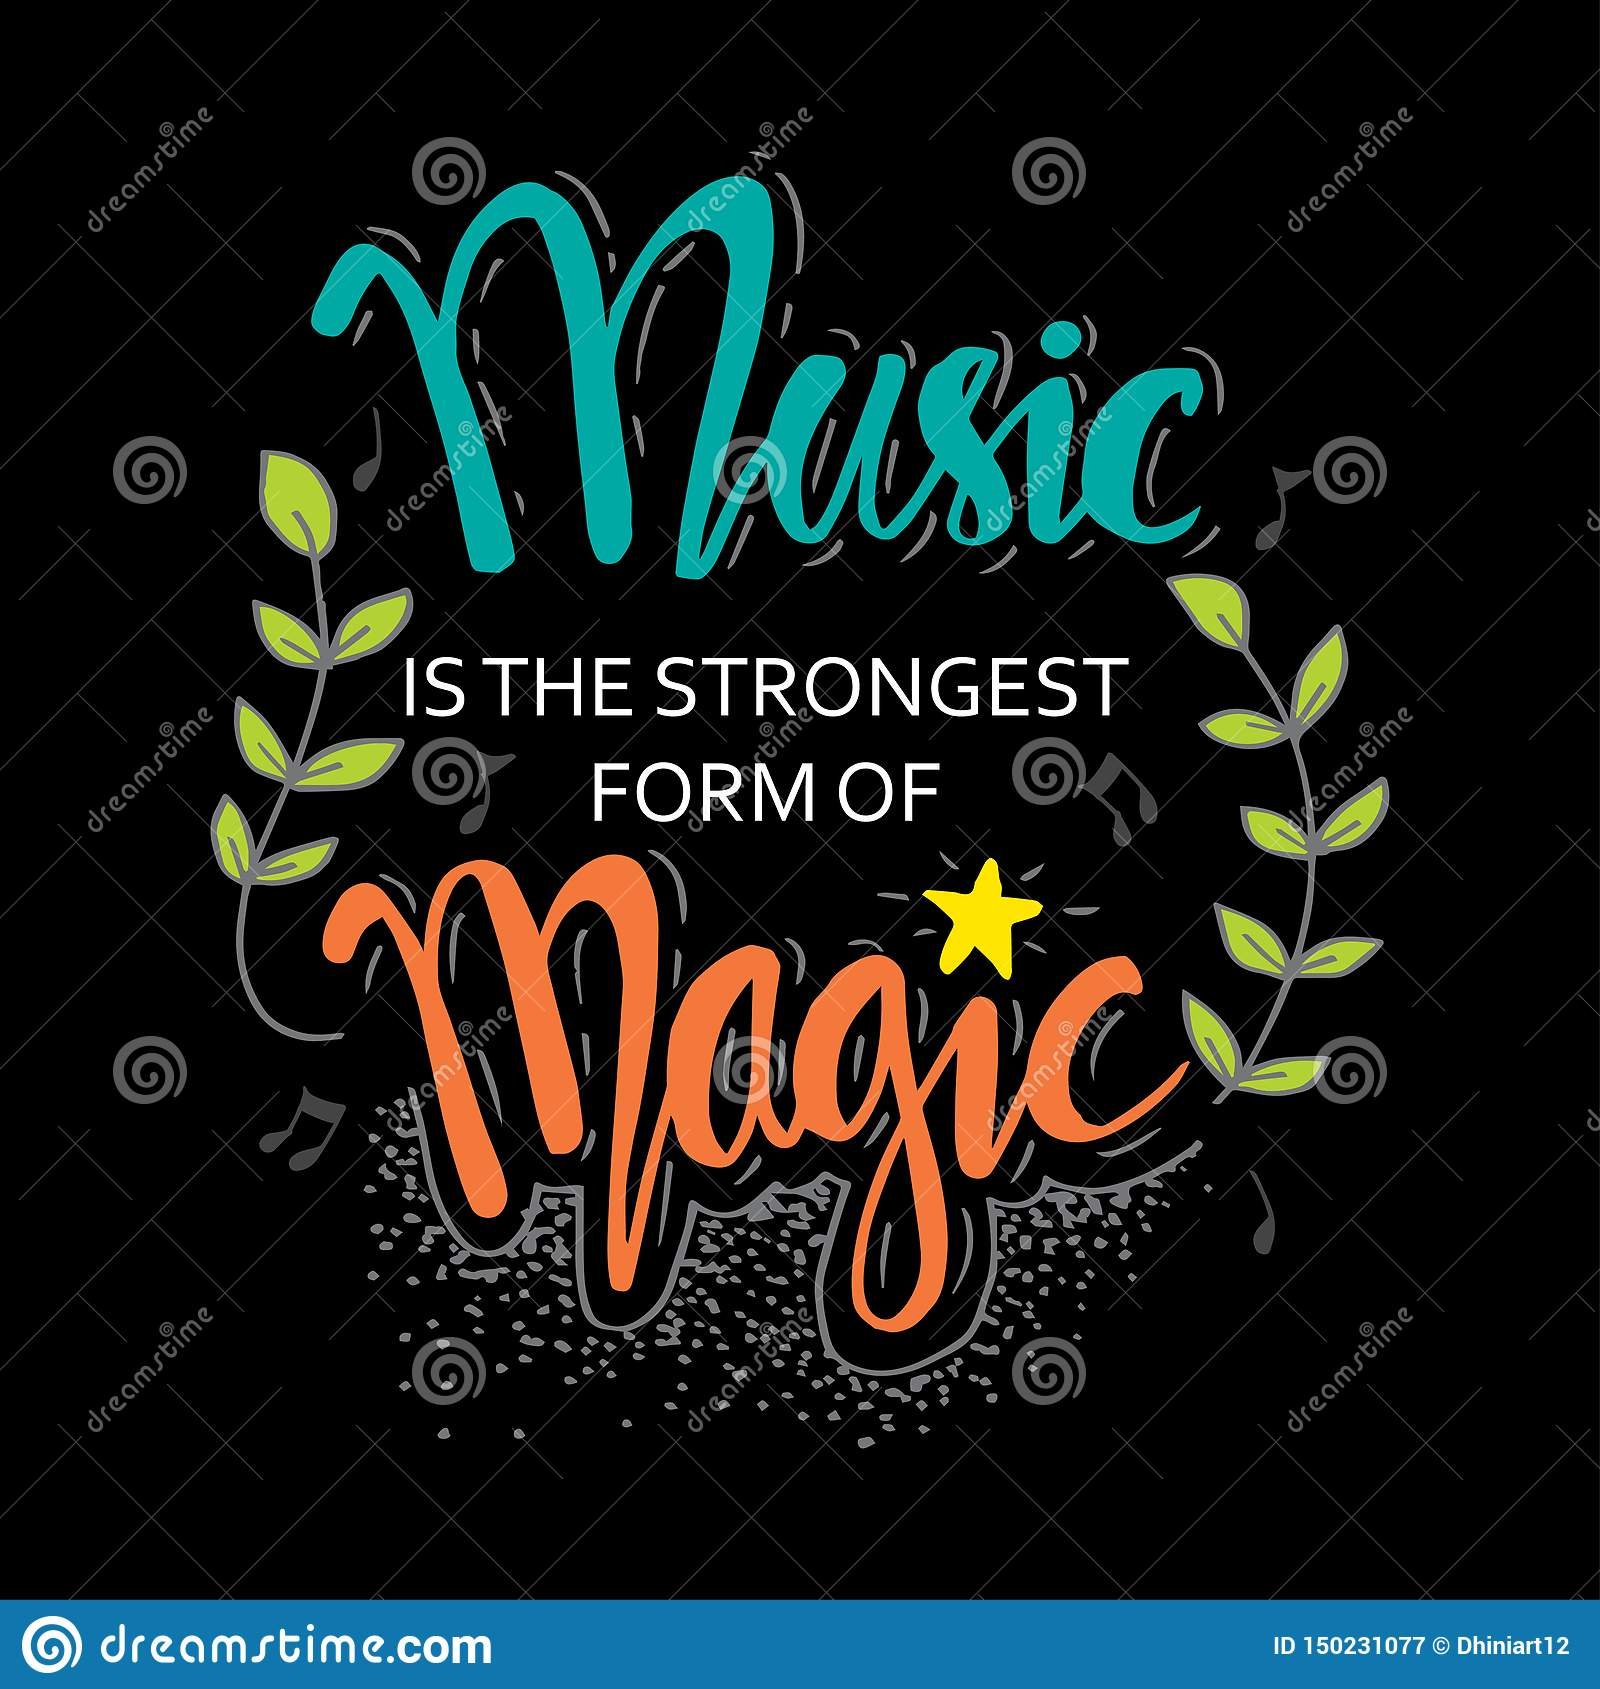 Music Quotes Stock Illustrations – 8 Music Quotes Stock